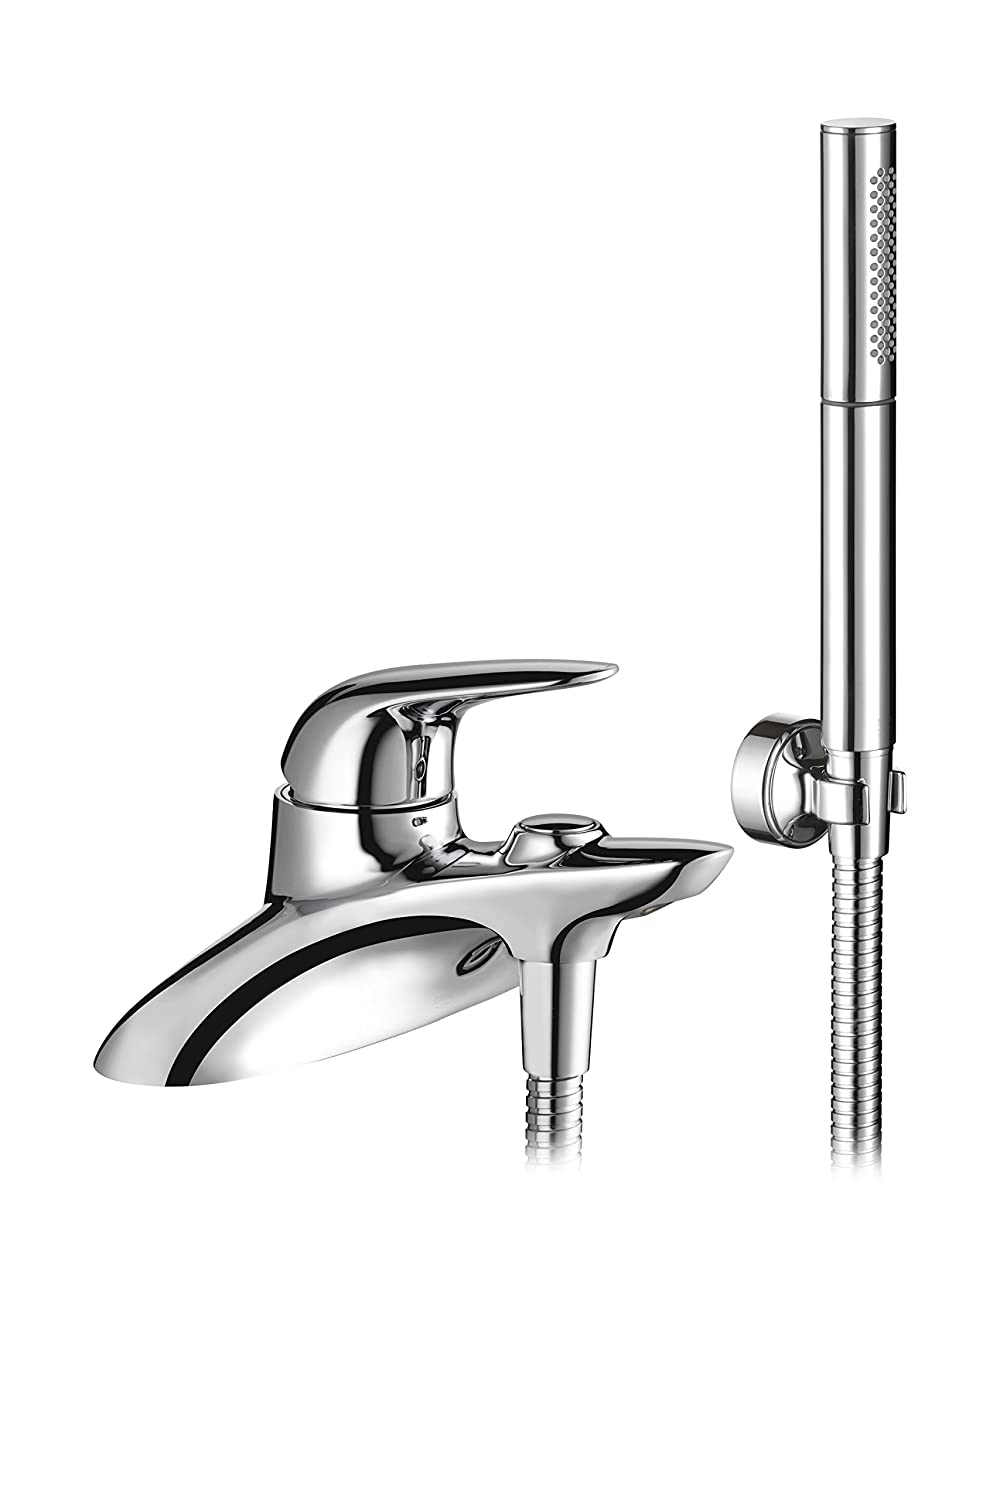 Mira Showers 2.1818.005 Comfort Modern Bath Shower Mixer Tap - Chrome